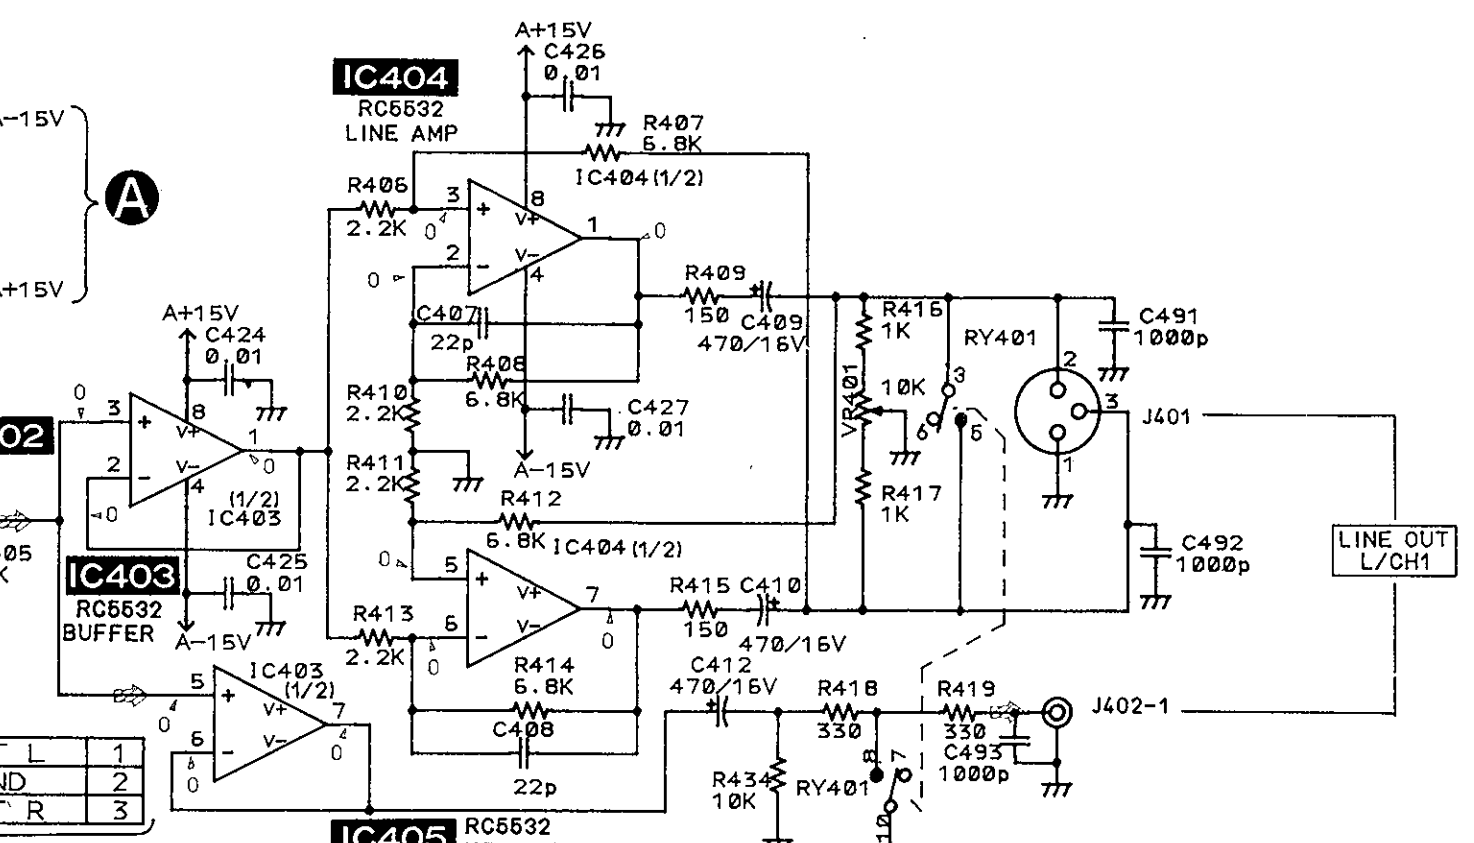 1992 Honda Prelude Speaker Wiring Diagram Vga Cable 15 Pin Mr2 Harness Engine And